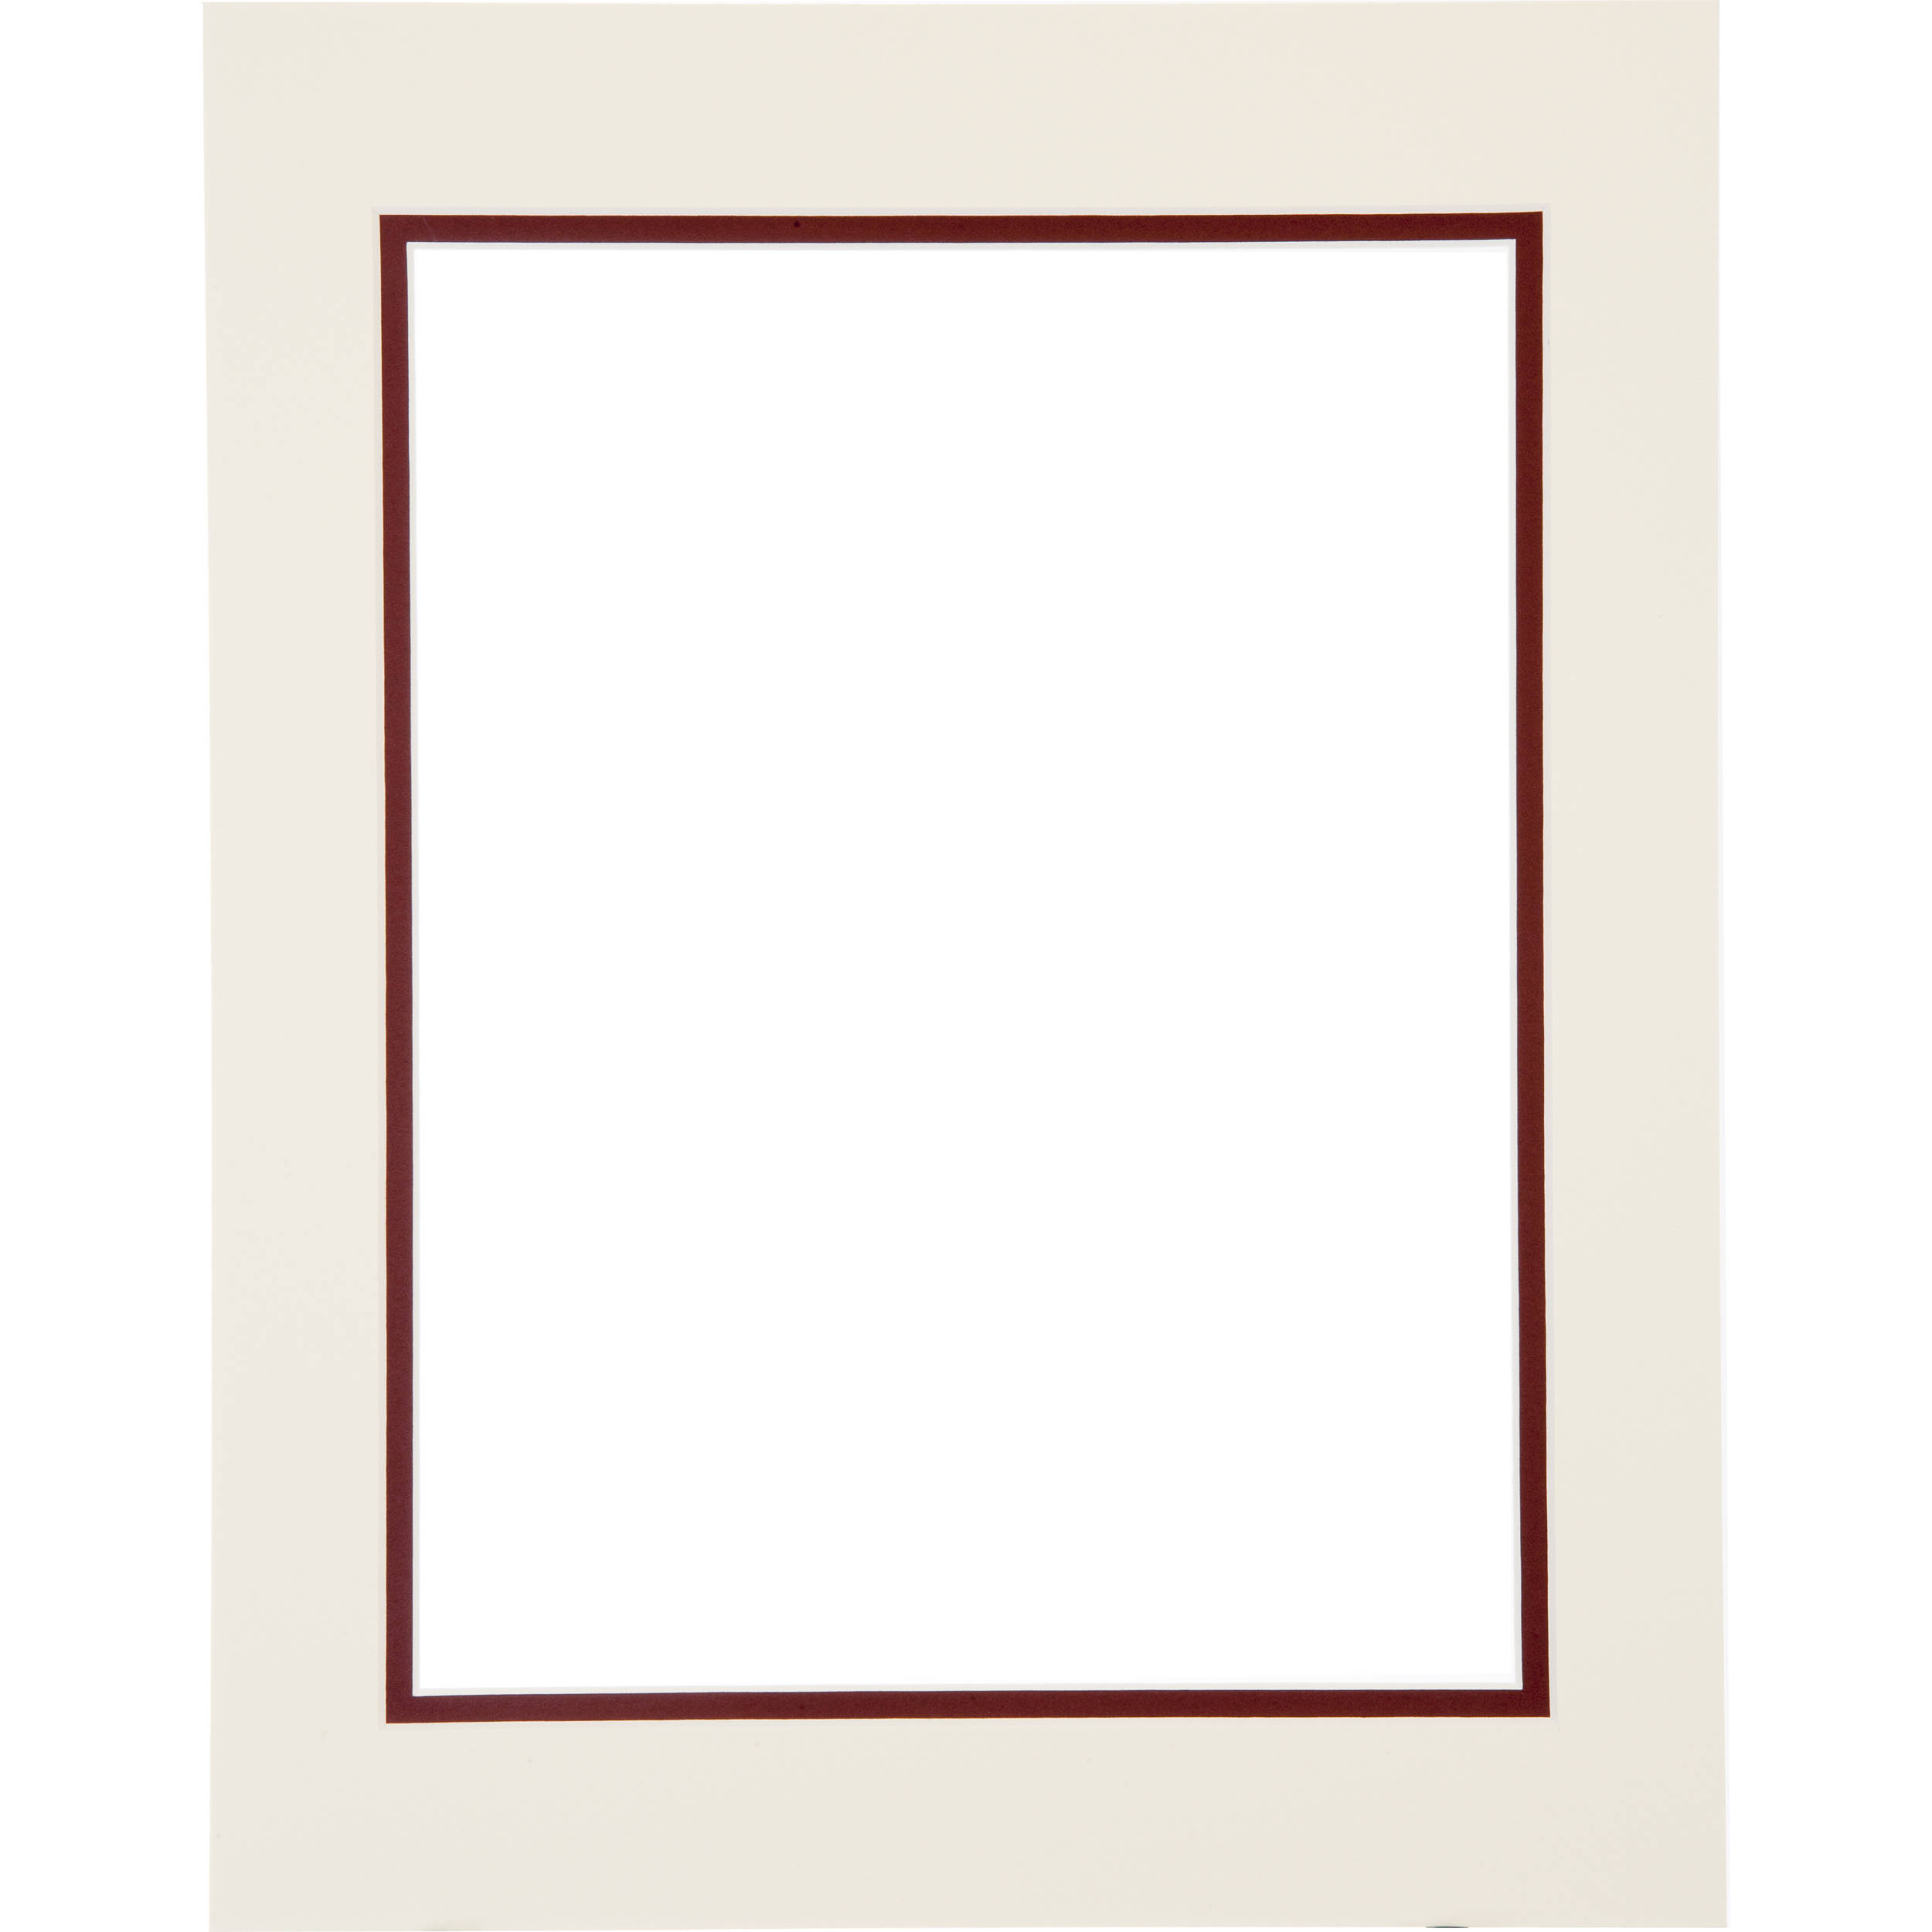 Logan Graphics 11 X 14 Quot Double Mat Frame With 8 5 M6033 45